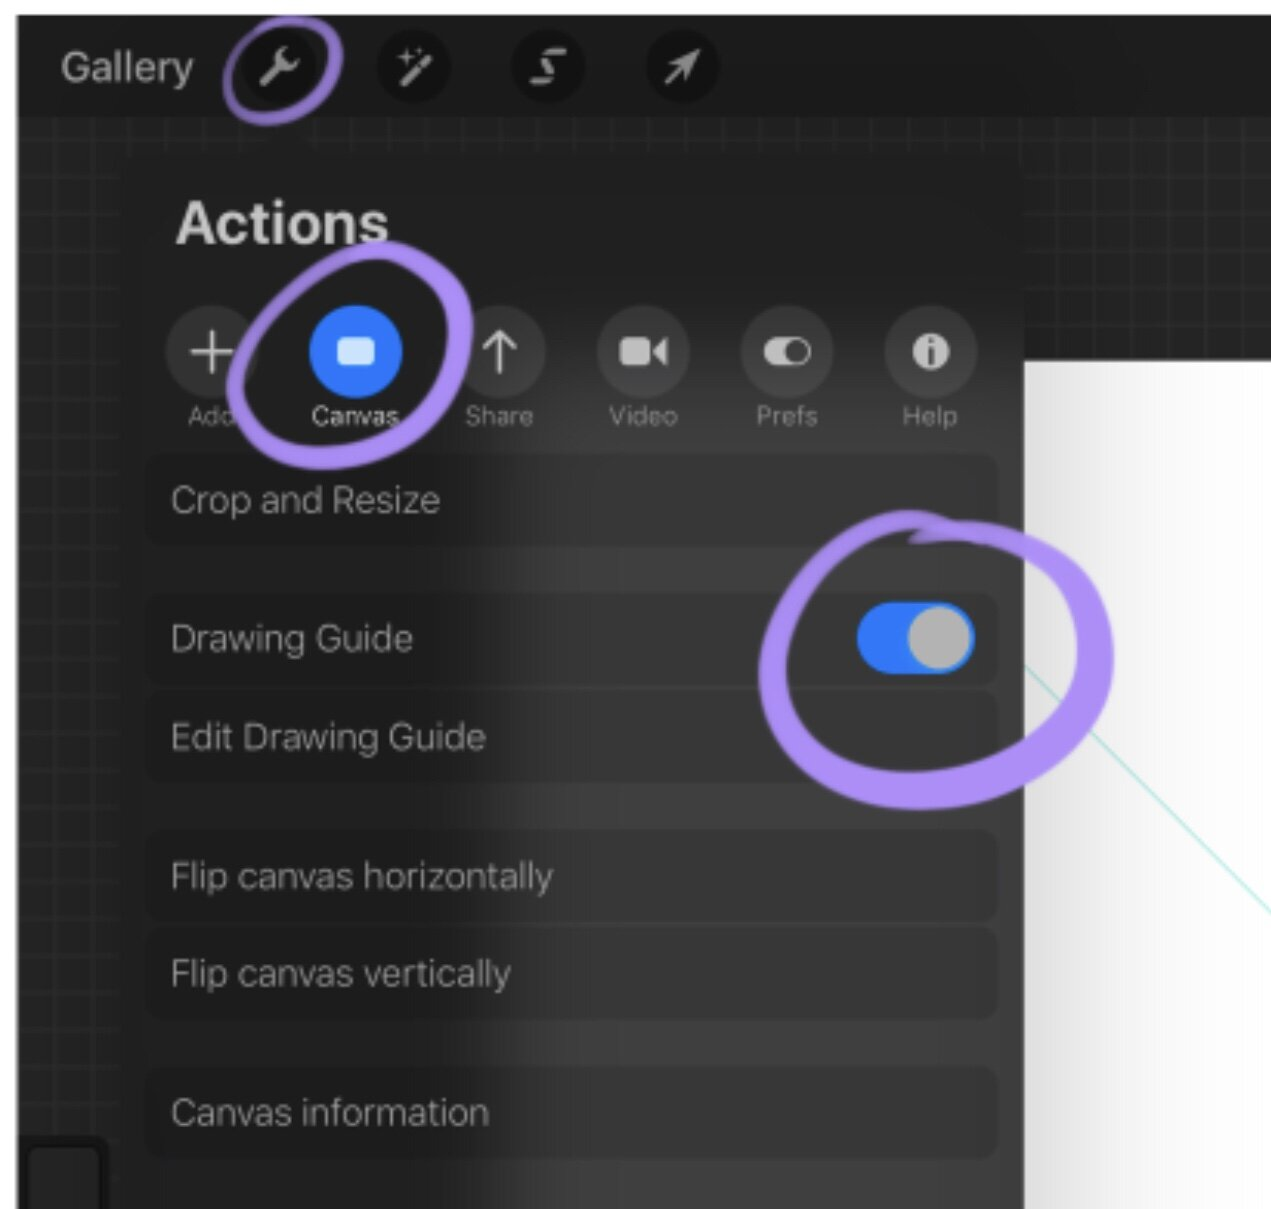 - To access your the tool you need to go to the actions bar again and then click canvas and make sure your drawing guide is visible.